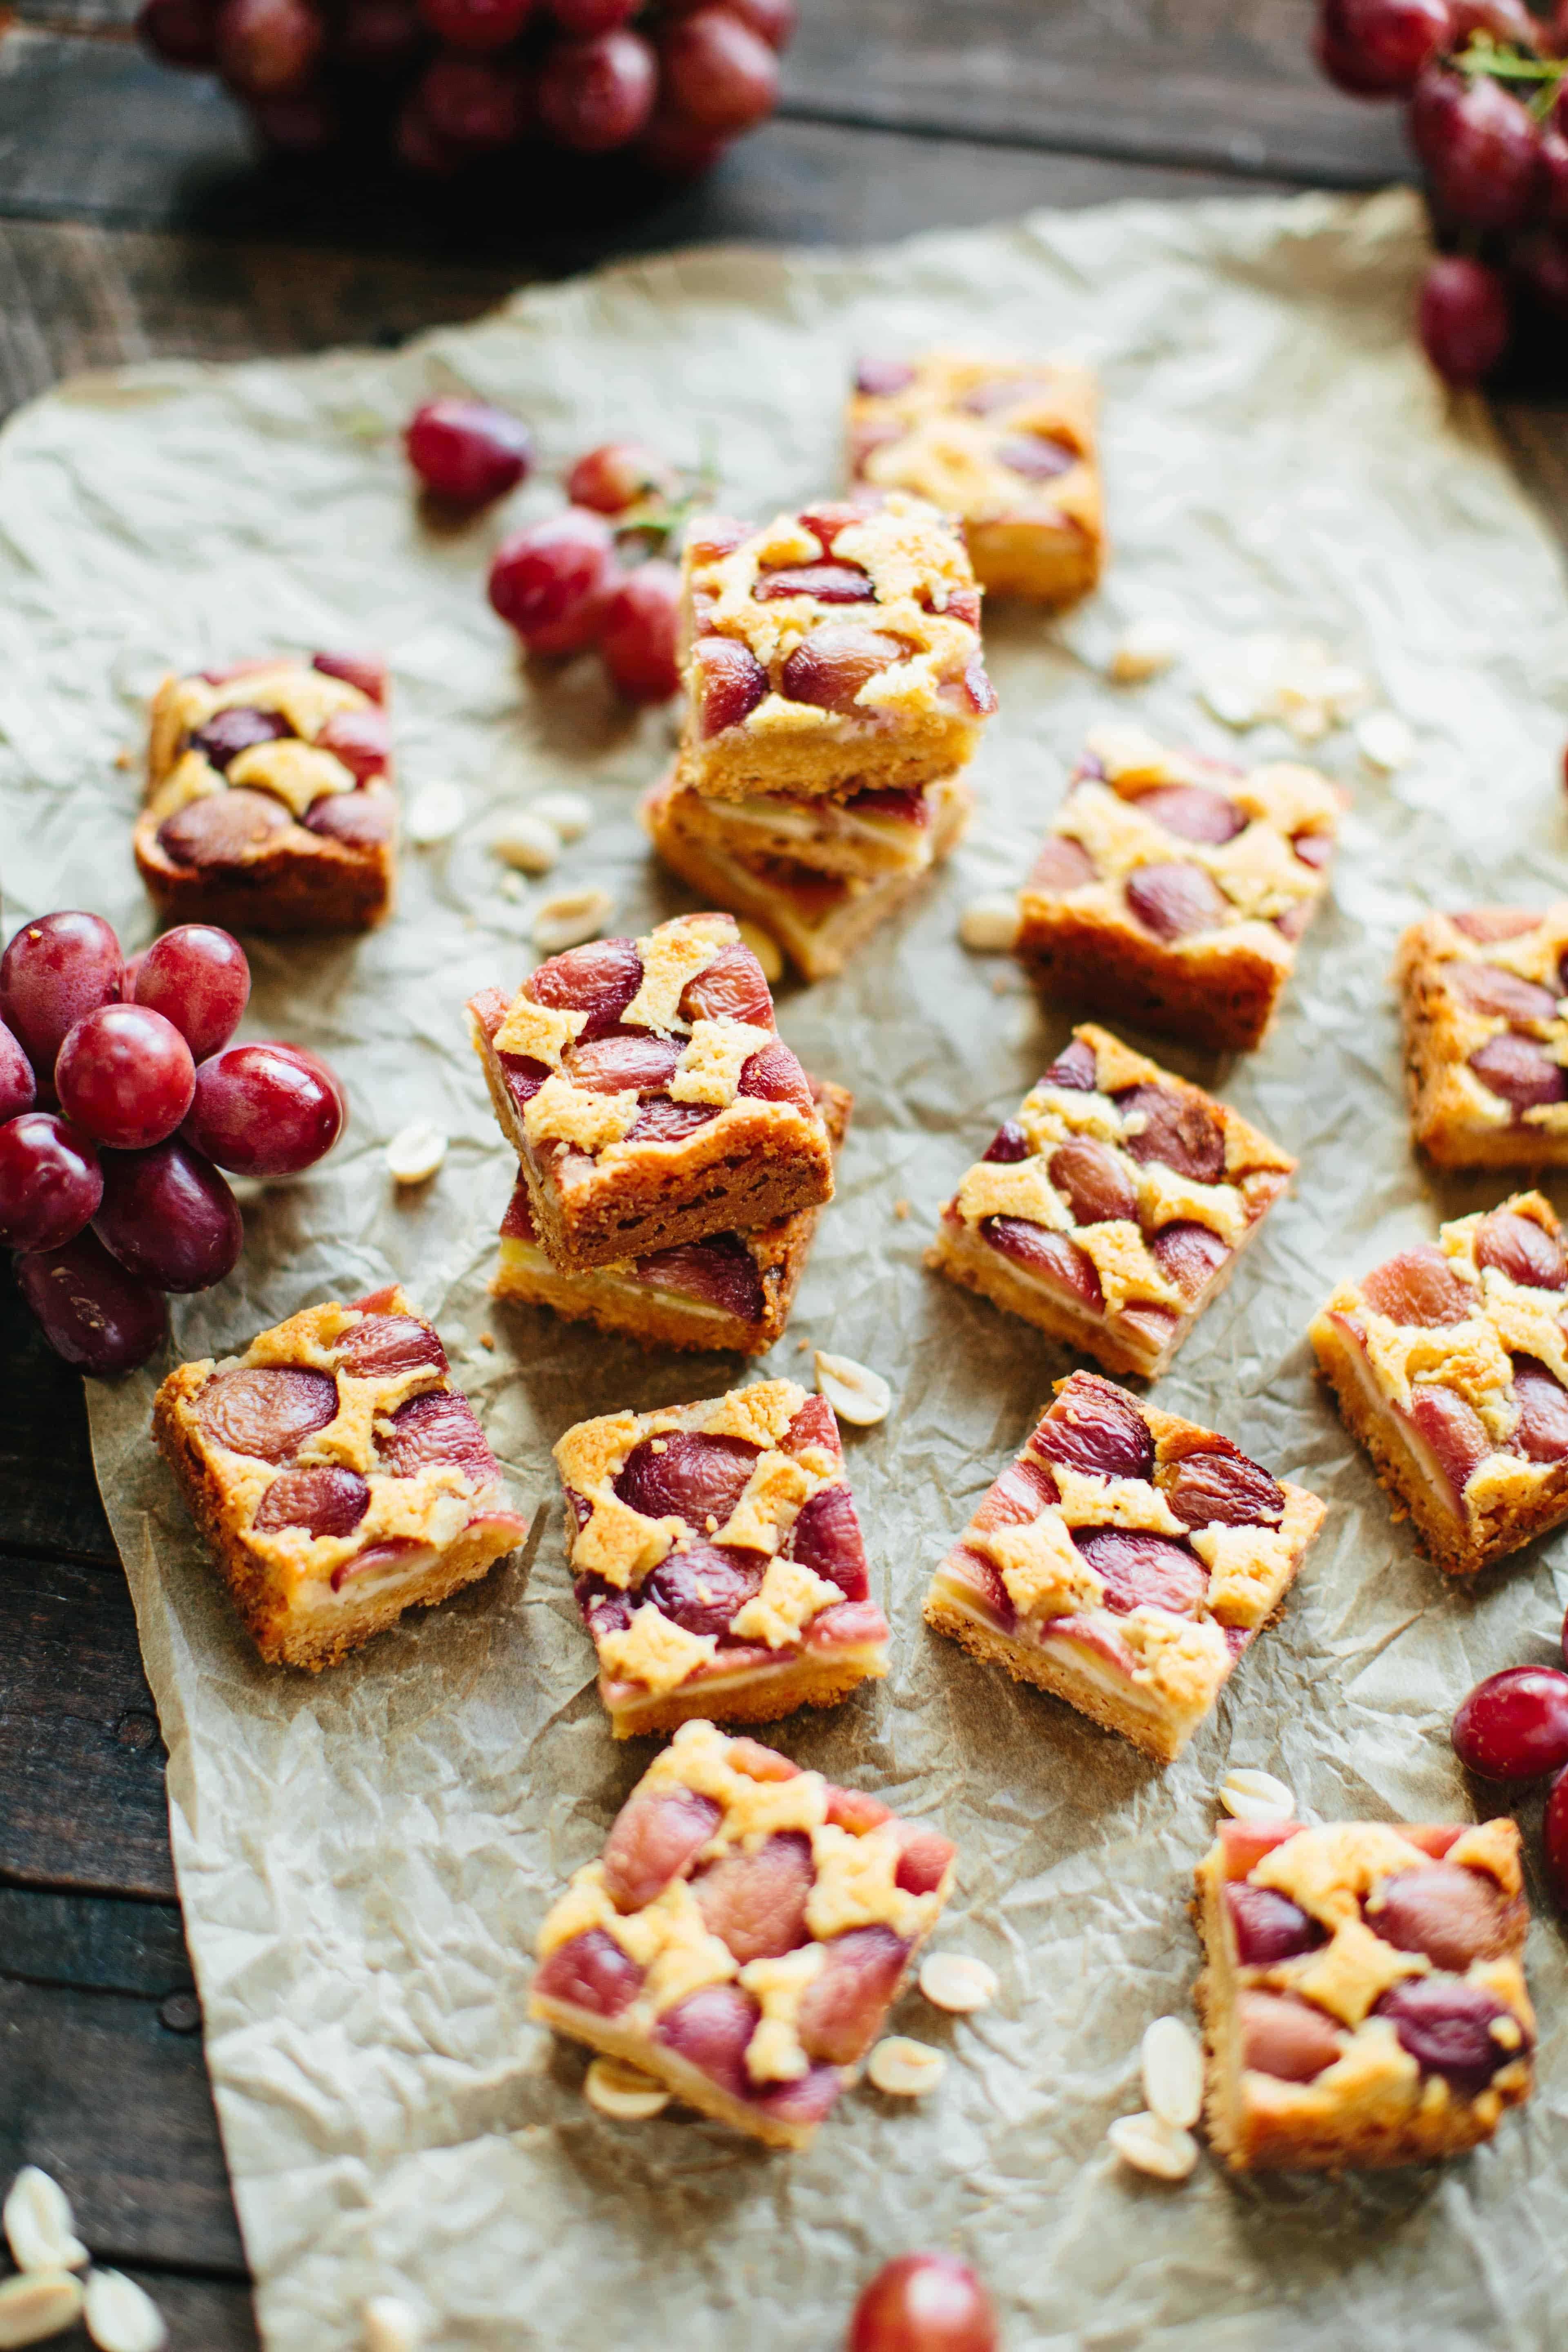 Buttery Shortbread bars with creamy peanut butter frangipane and sweet, juicy grapes! A surprisingly easy and unique treat that's gluten free optional. #easy #shortbread #bars #peanutbutter #grapes #recipe | ColeyCooks.com